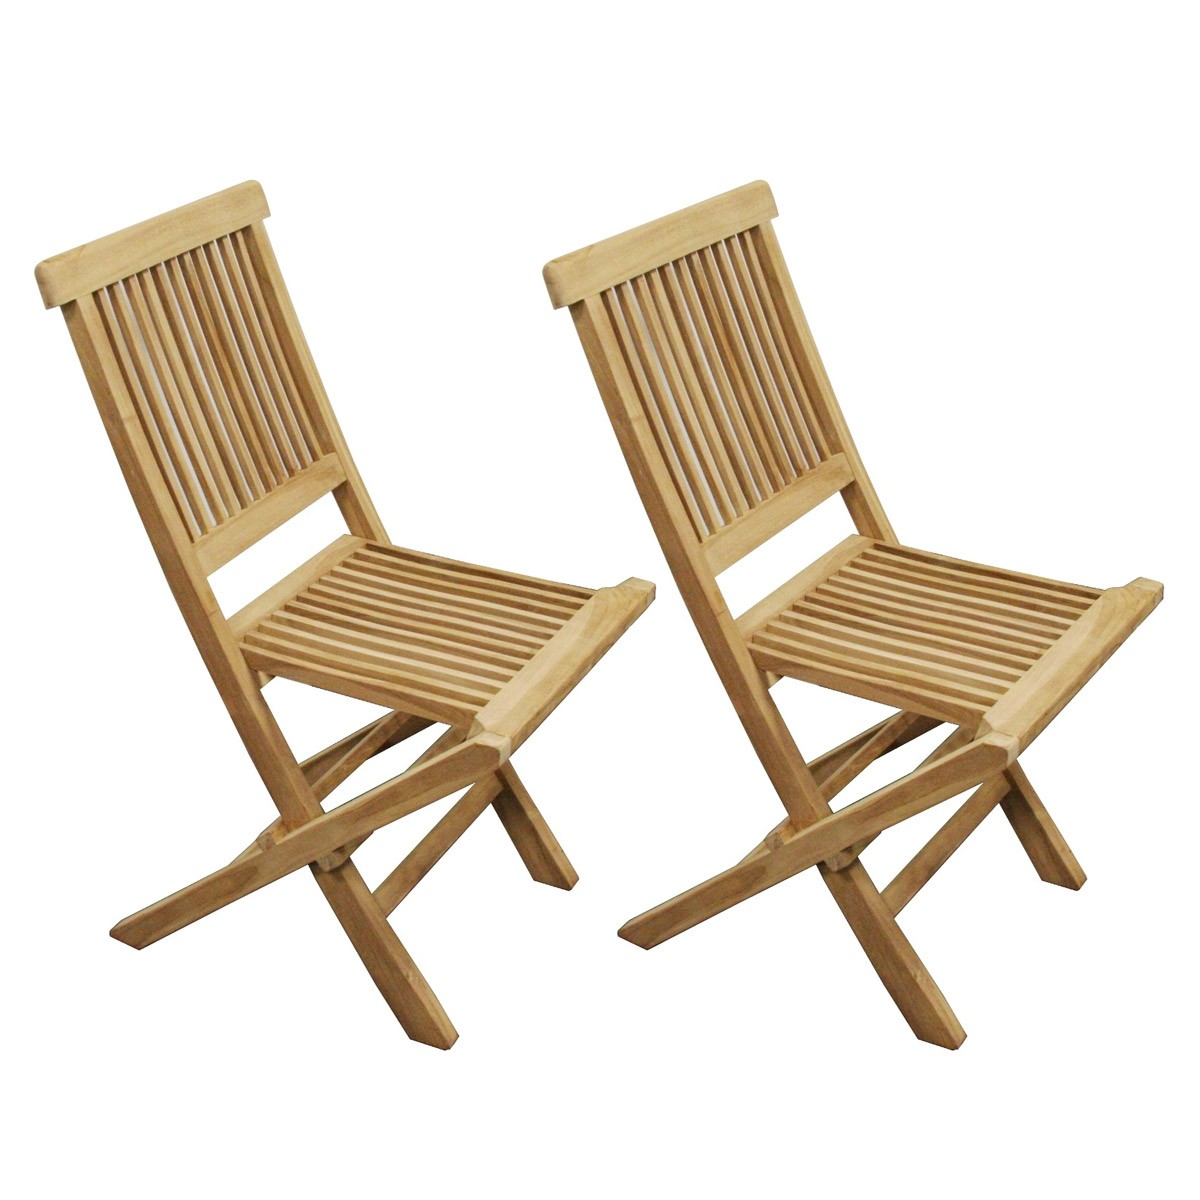 2 chaises Manille Teck brut